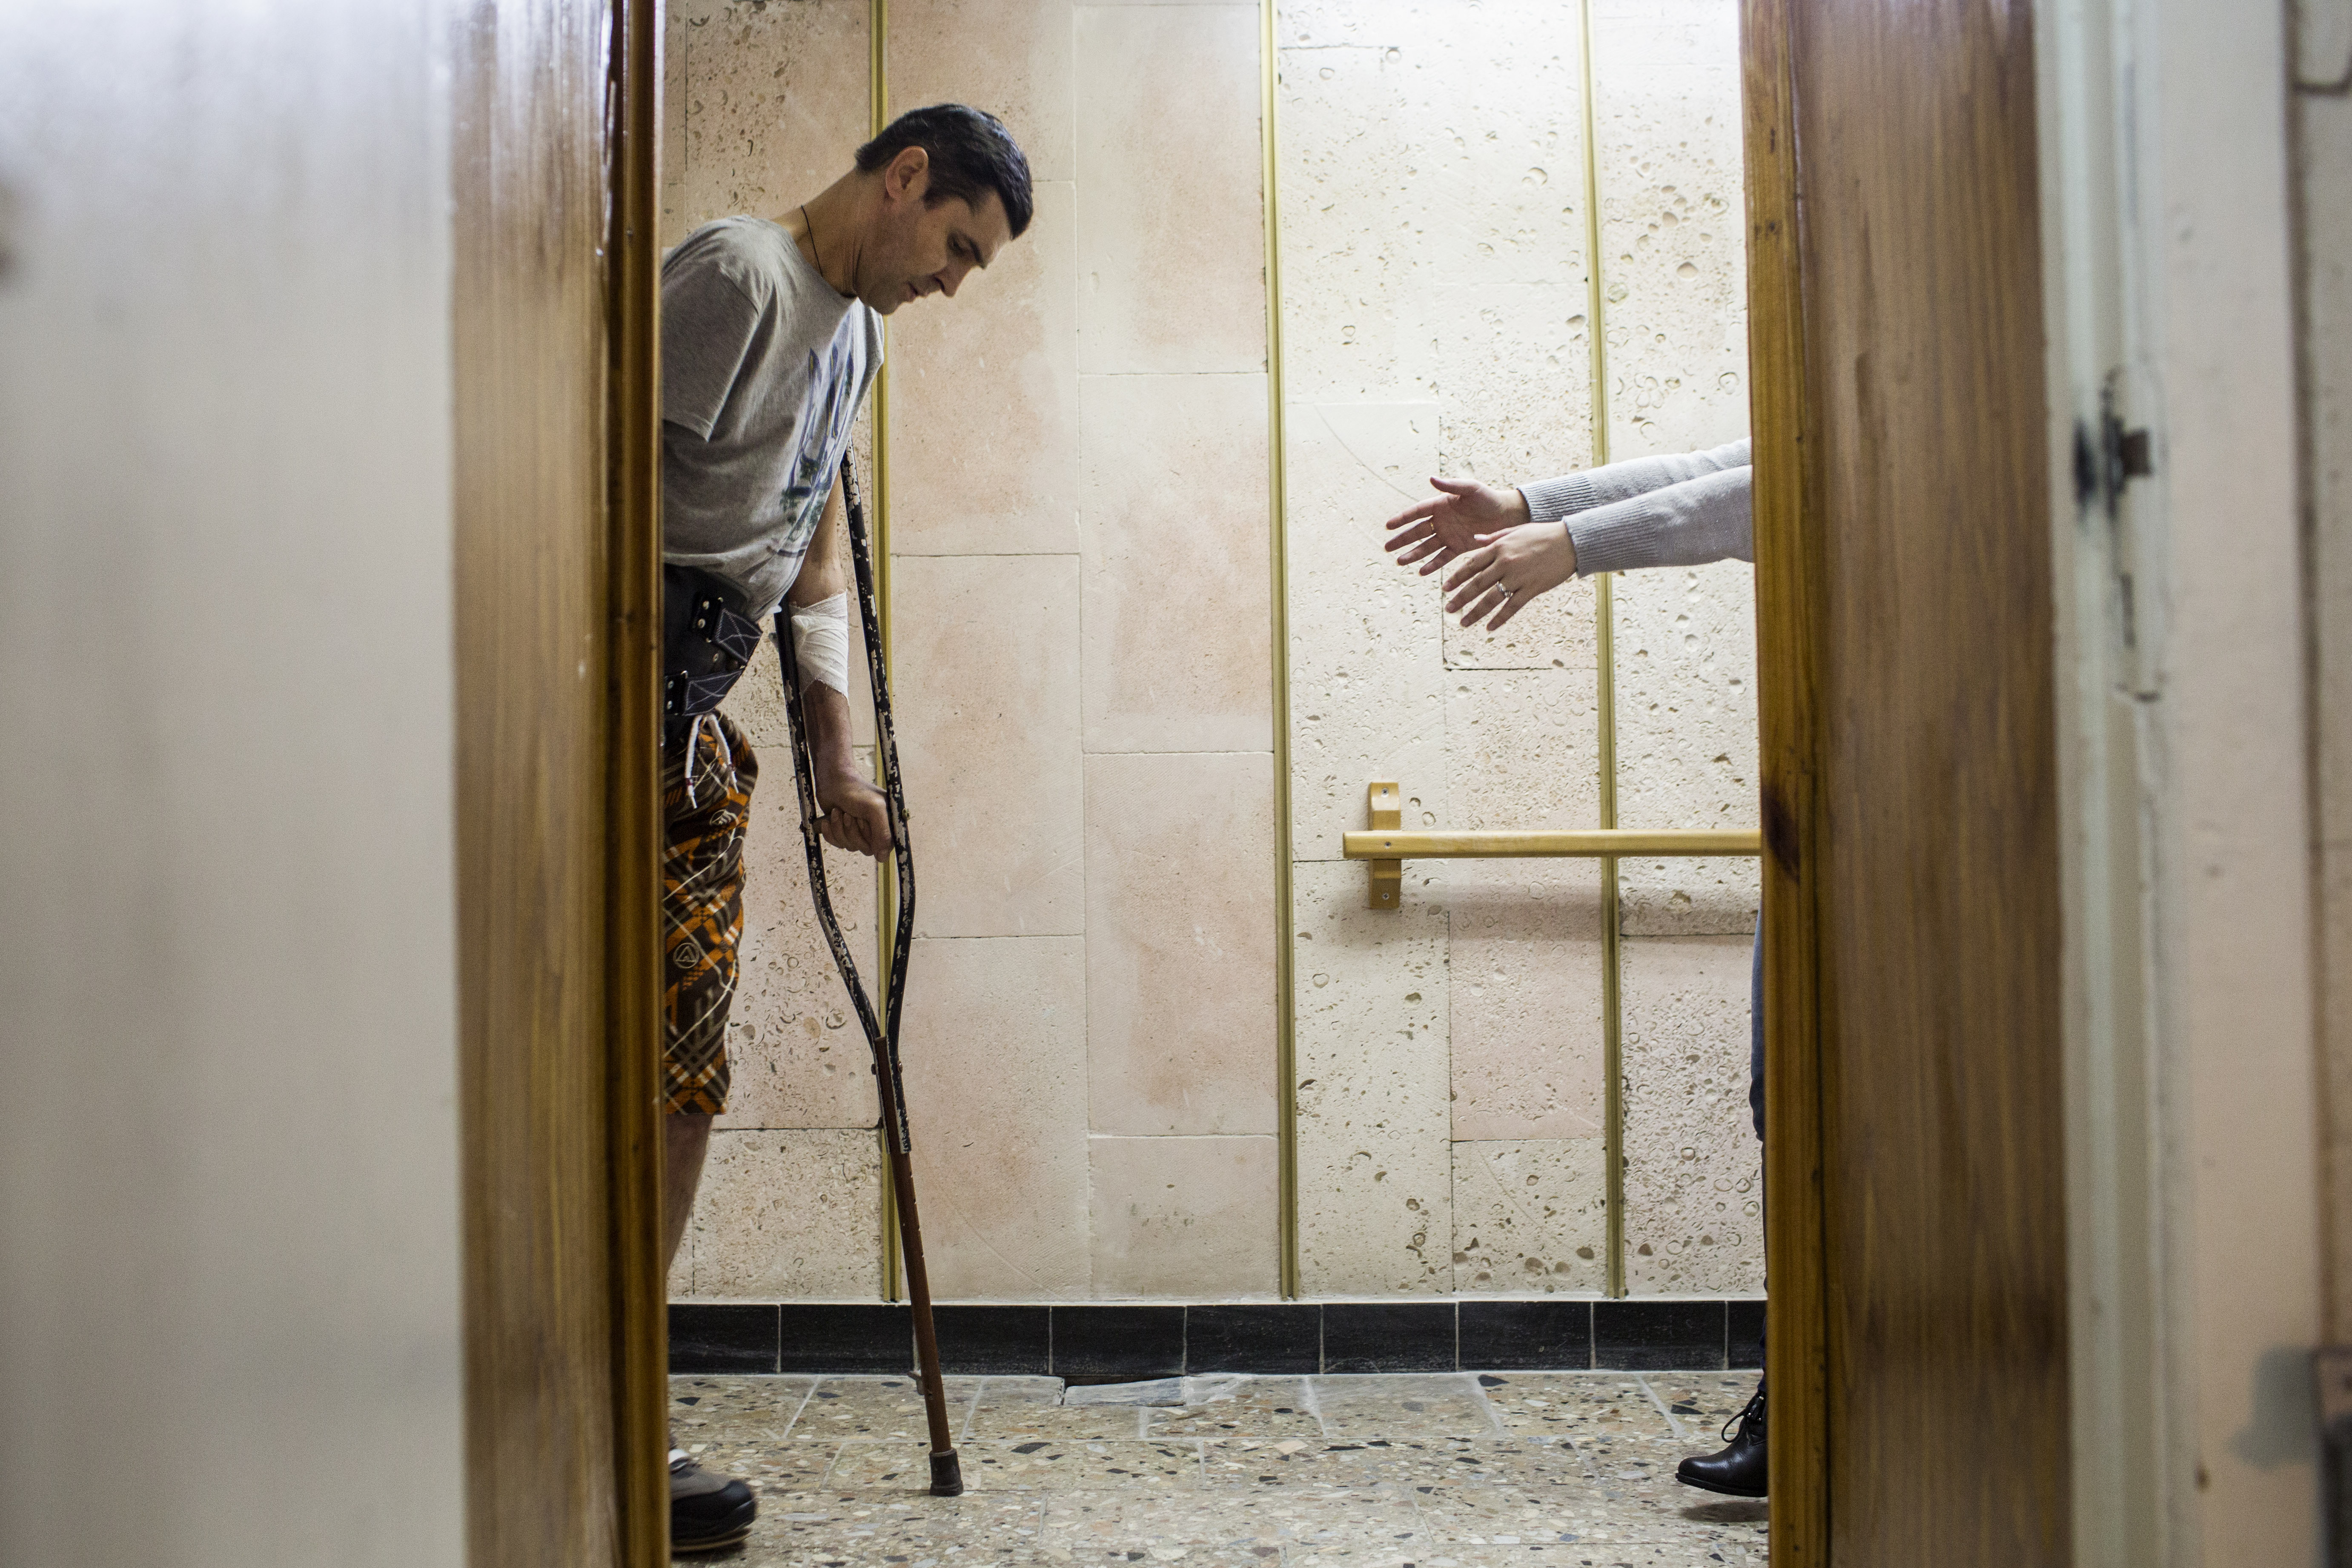 Viacheslav Buinovsky, 41, walks toward a close friend as he takes some of his first steps using a prosthetic leg at Ortotech Service, a prosthetics workshop in Kiev, Ukraine, Feb. 10, 2015. Buinovsky worked as a mechanic in Sumy Oblast prior to the Euromaidan revolution, in which he took an active role. He joined the Aidar Battalion, a volunteer unit, after the revolution and was severely wounded near Luhansk in September 2014. His right hand and right leg were amputated.  I would like to return to fight, but I do not have the ability,  he said.  What I can do to contribute from here, I will do. Everyone who was there would like to return back ... but not everyone can.